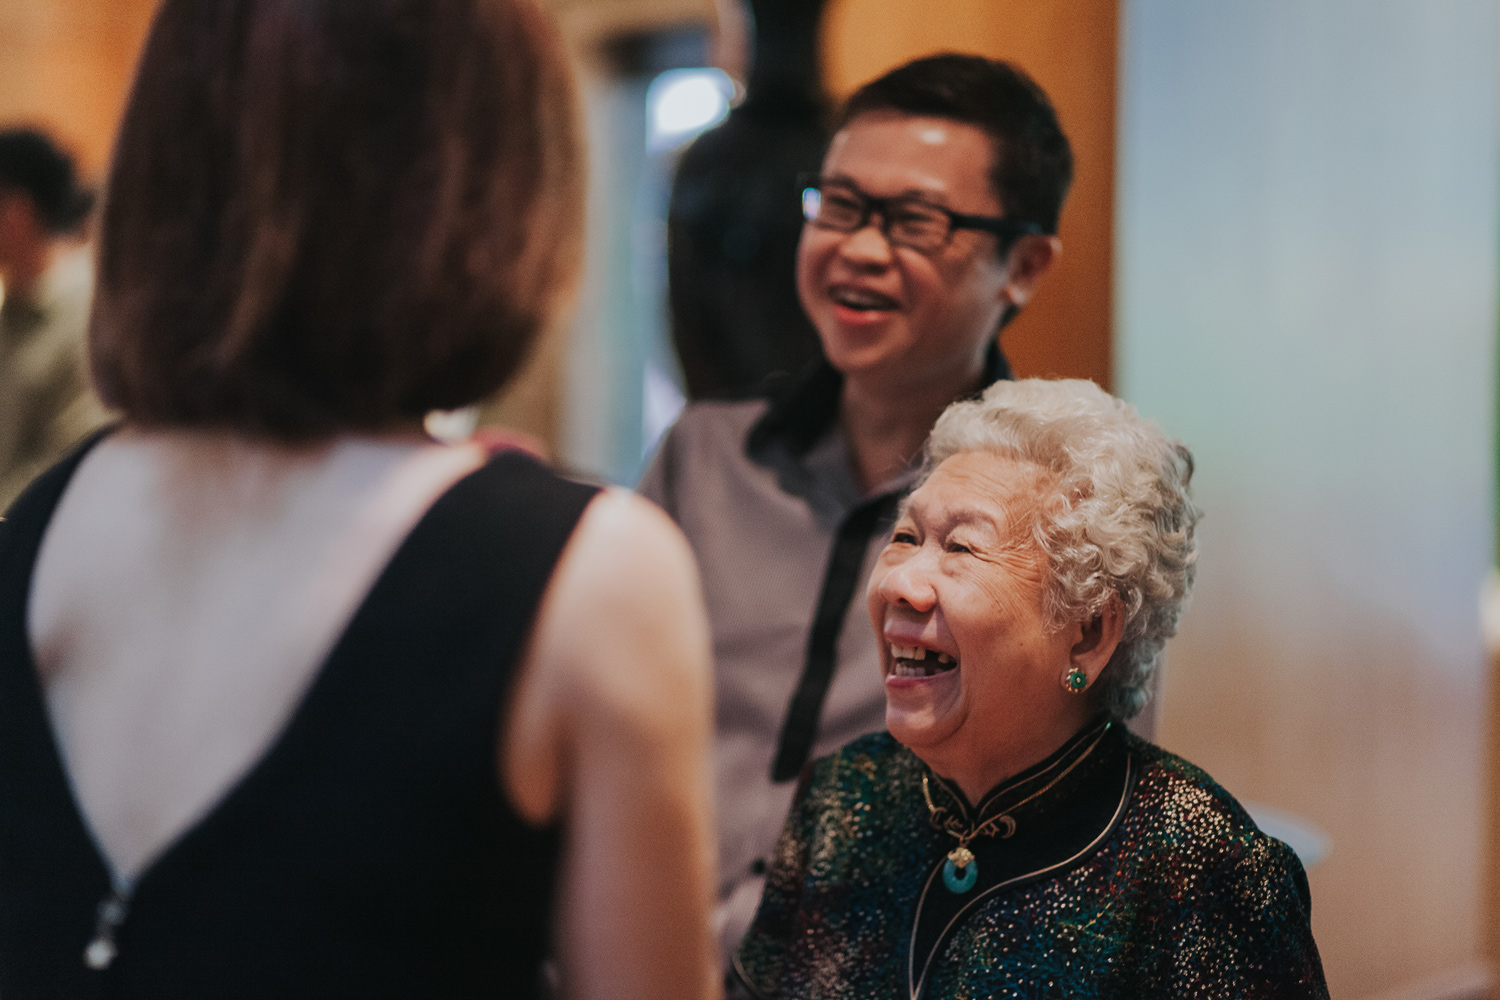 bittersweet photography Singapore wedding photographer jonathan 89